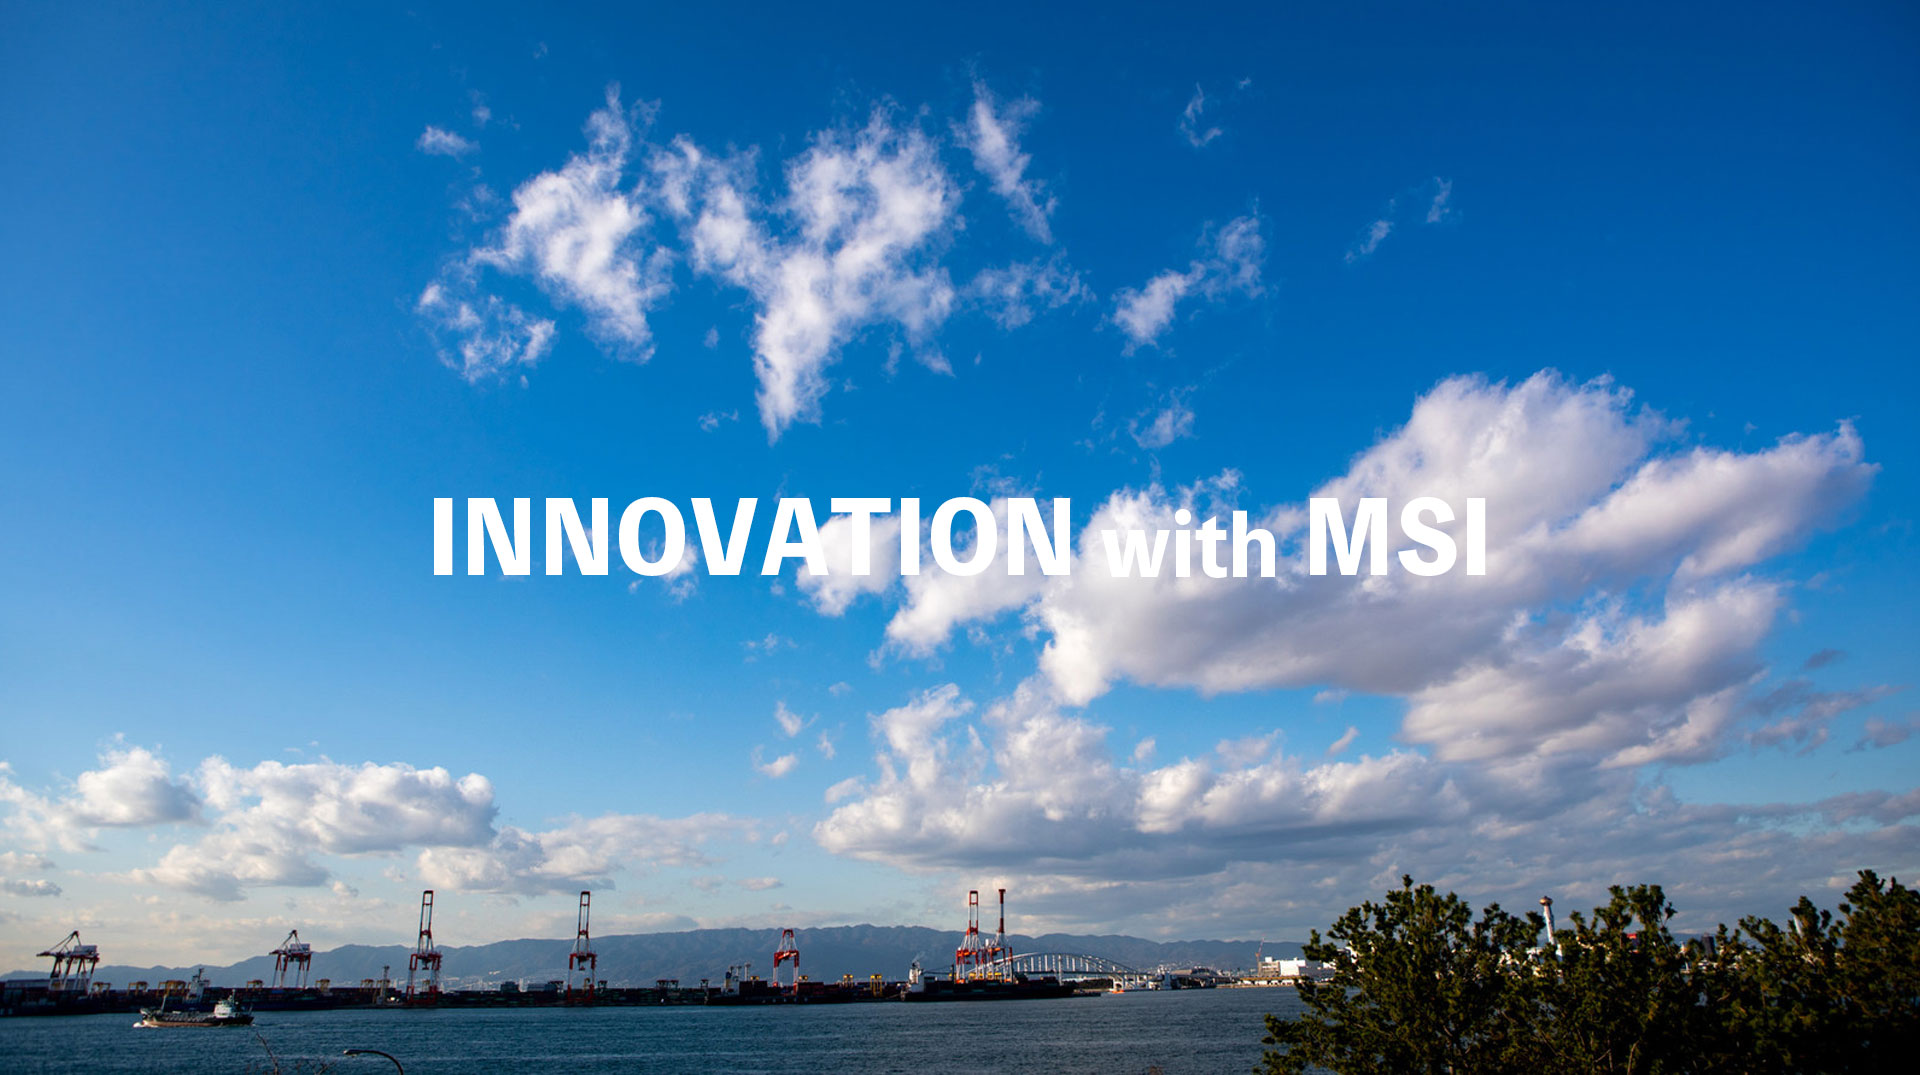 Innovation with MSI